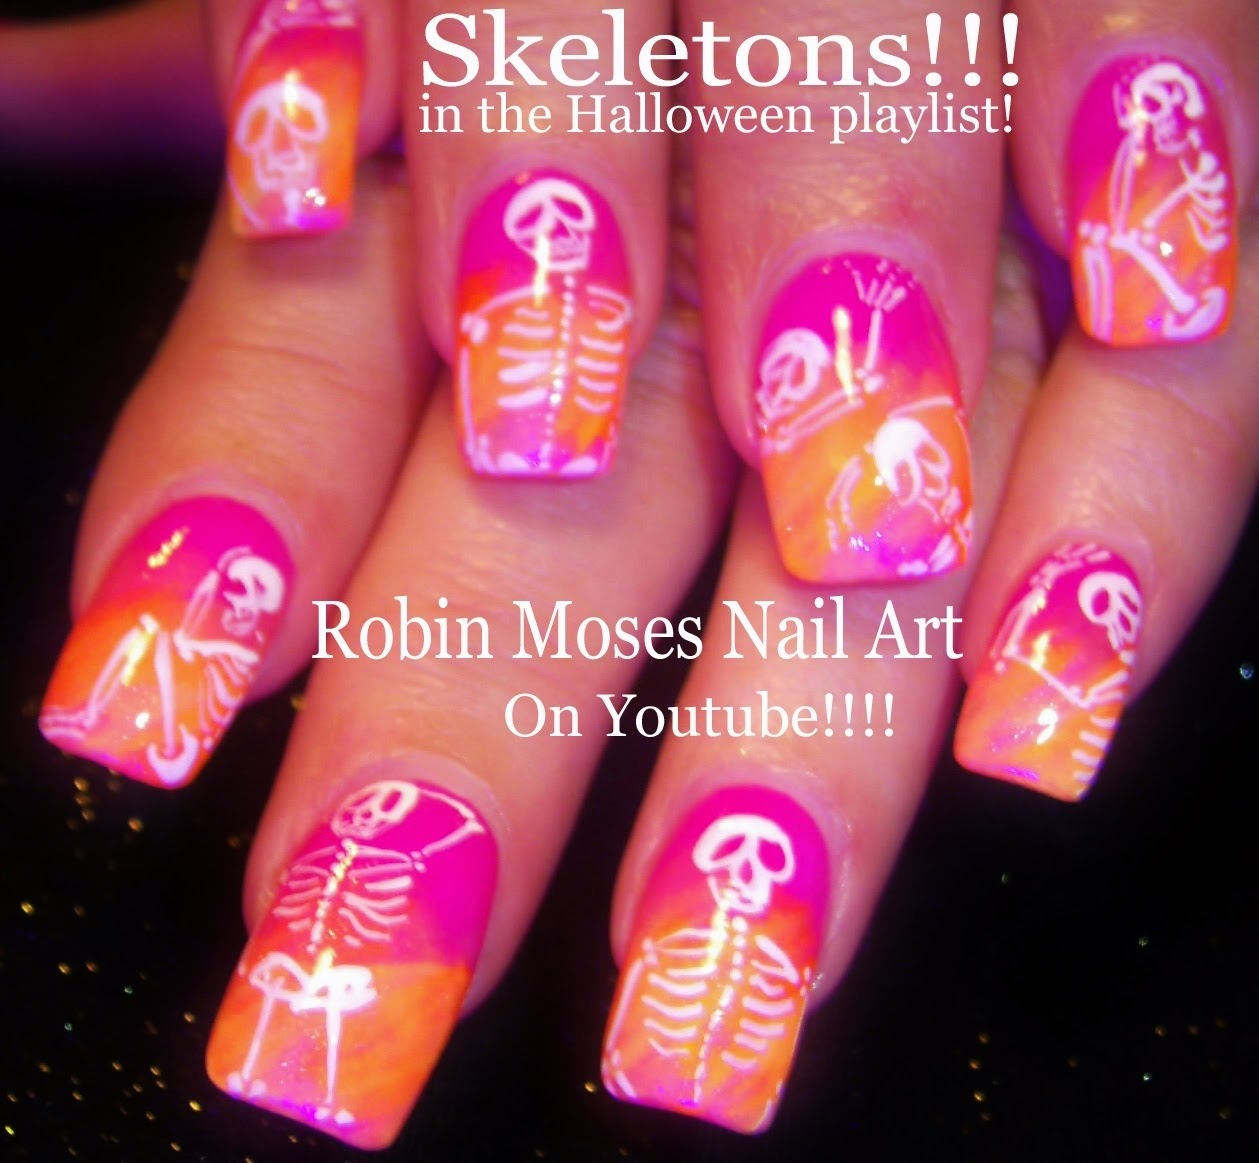 Robin moses nail art skeleton nails halloween nails 10 nail art tutorials diy easy halloween nail designs neon skeletons prinsesfo Gallery